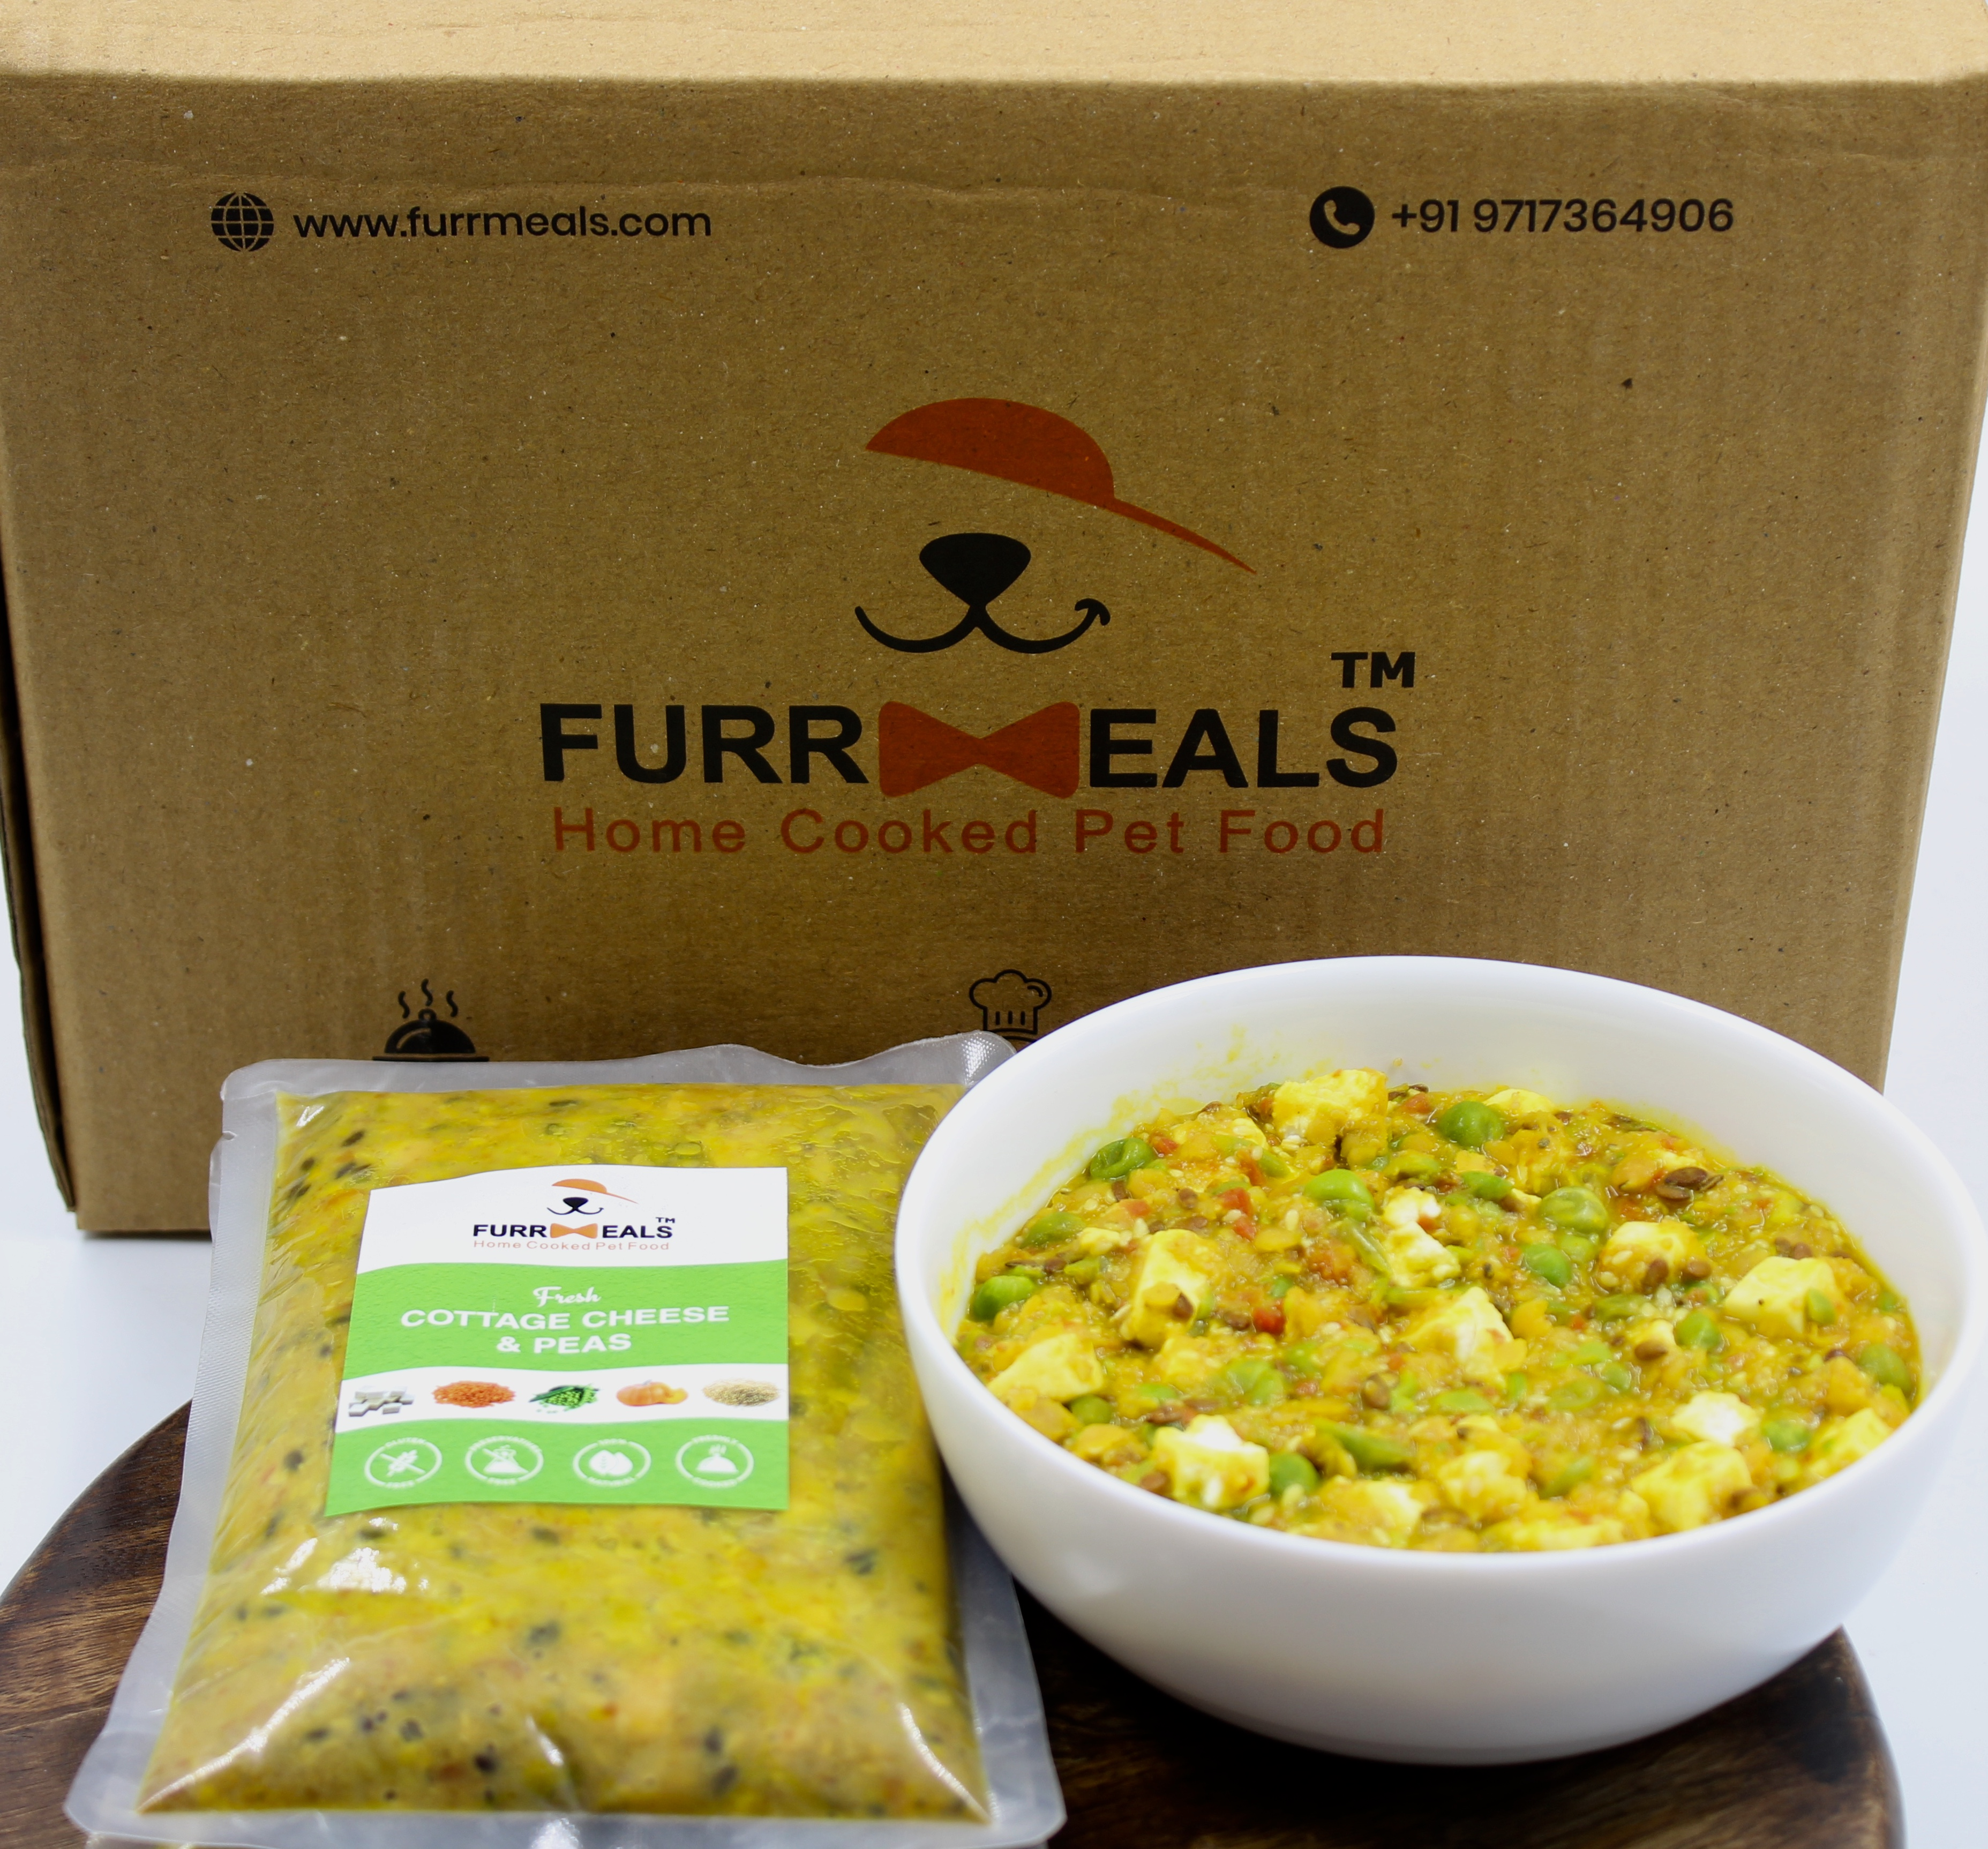 FurrMeals Small Furry Weekly Veg Plan (Fresh Cottage Cheese & Peas) - 200 gm (Pack of 14)